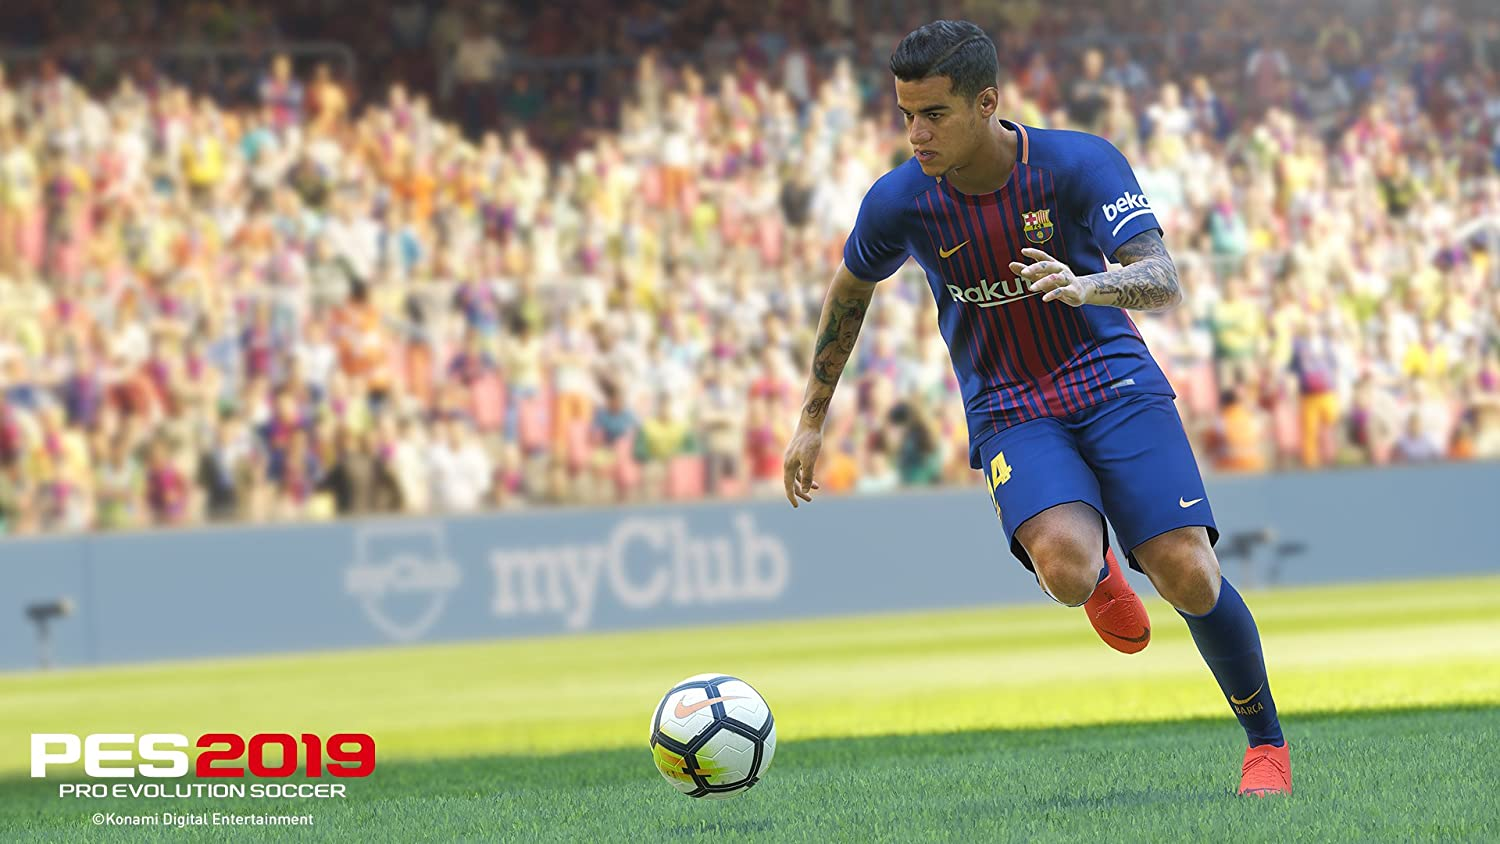 Amazon Com Pro Evolution Soccer 2019 Playstation 4 David Beckham